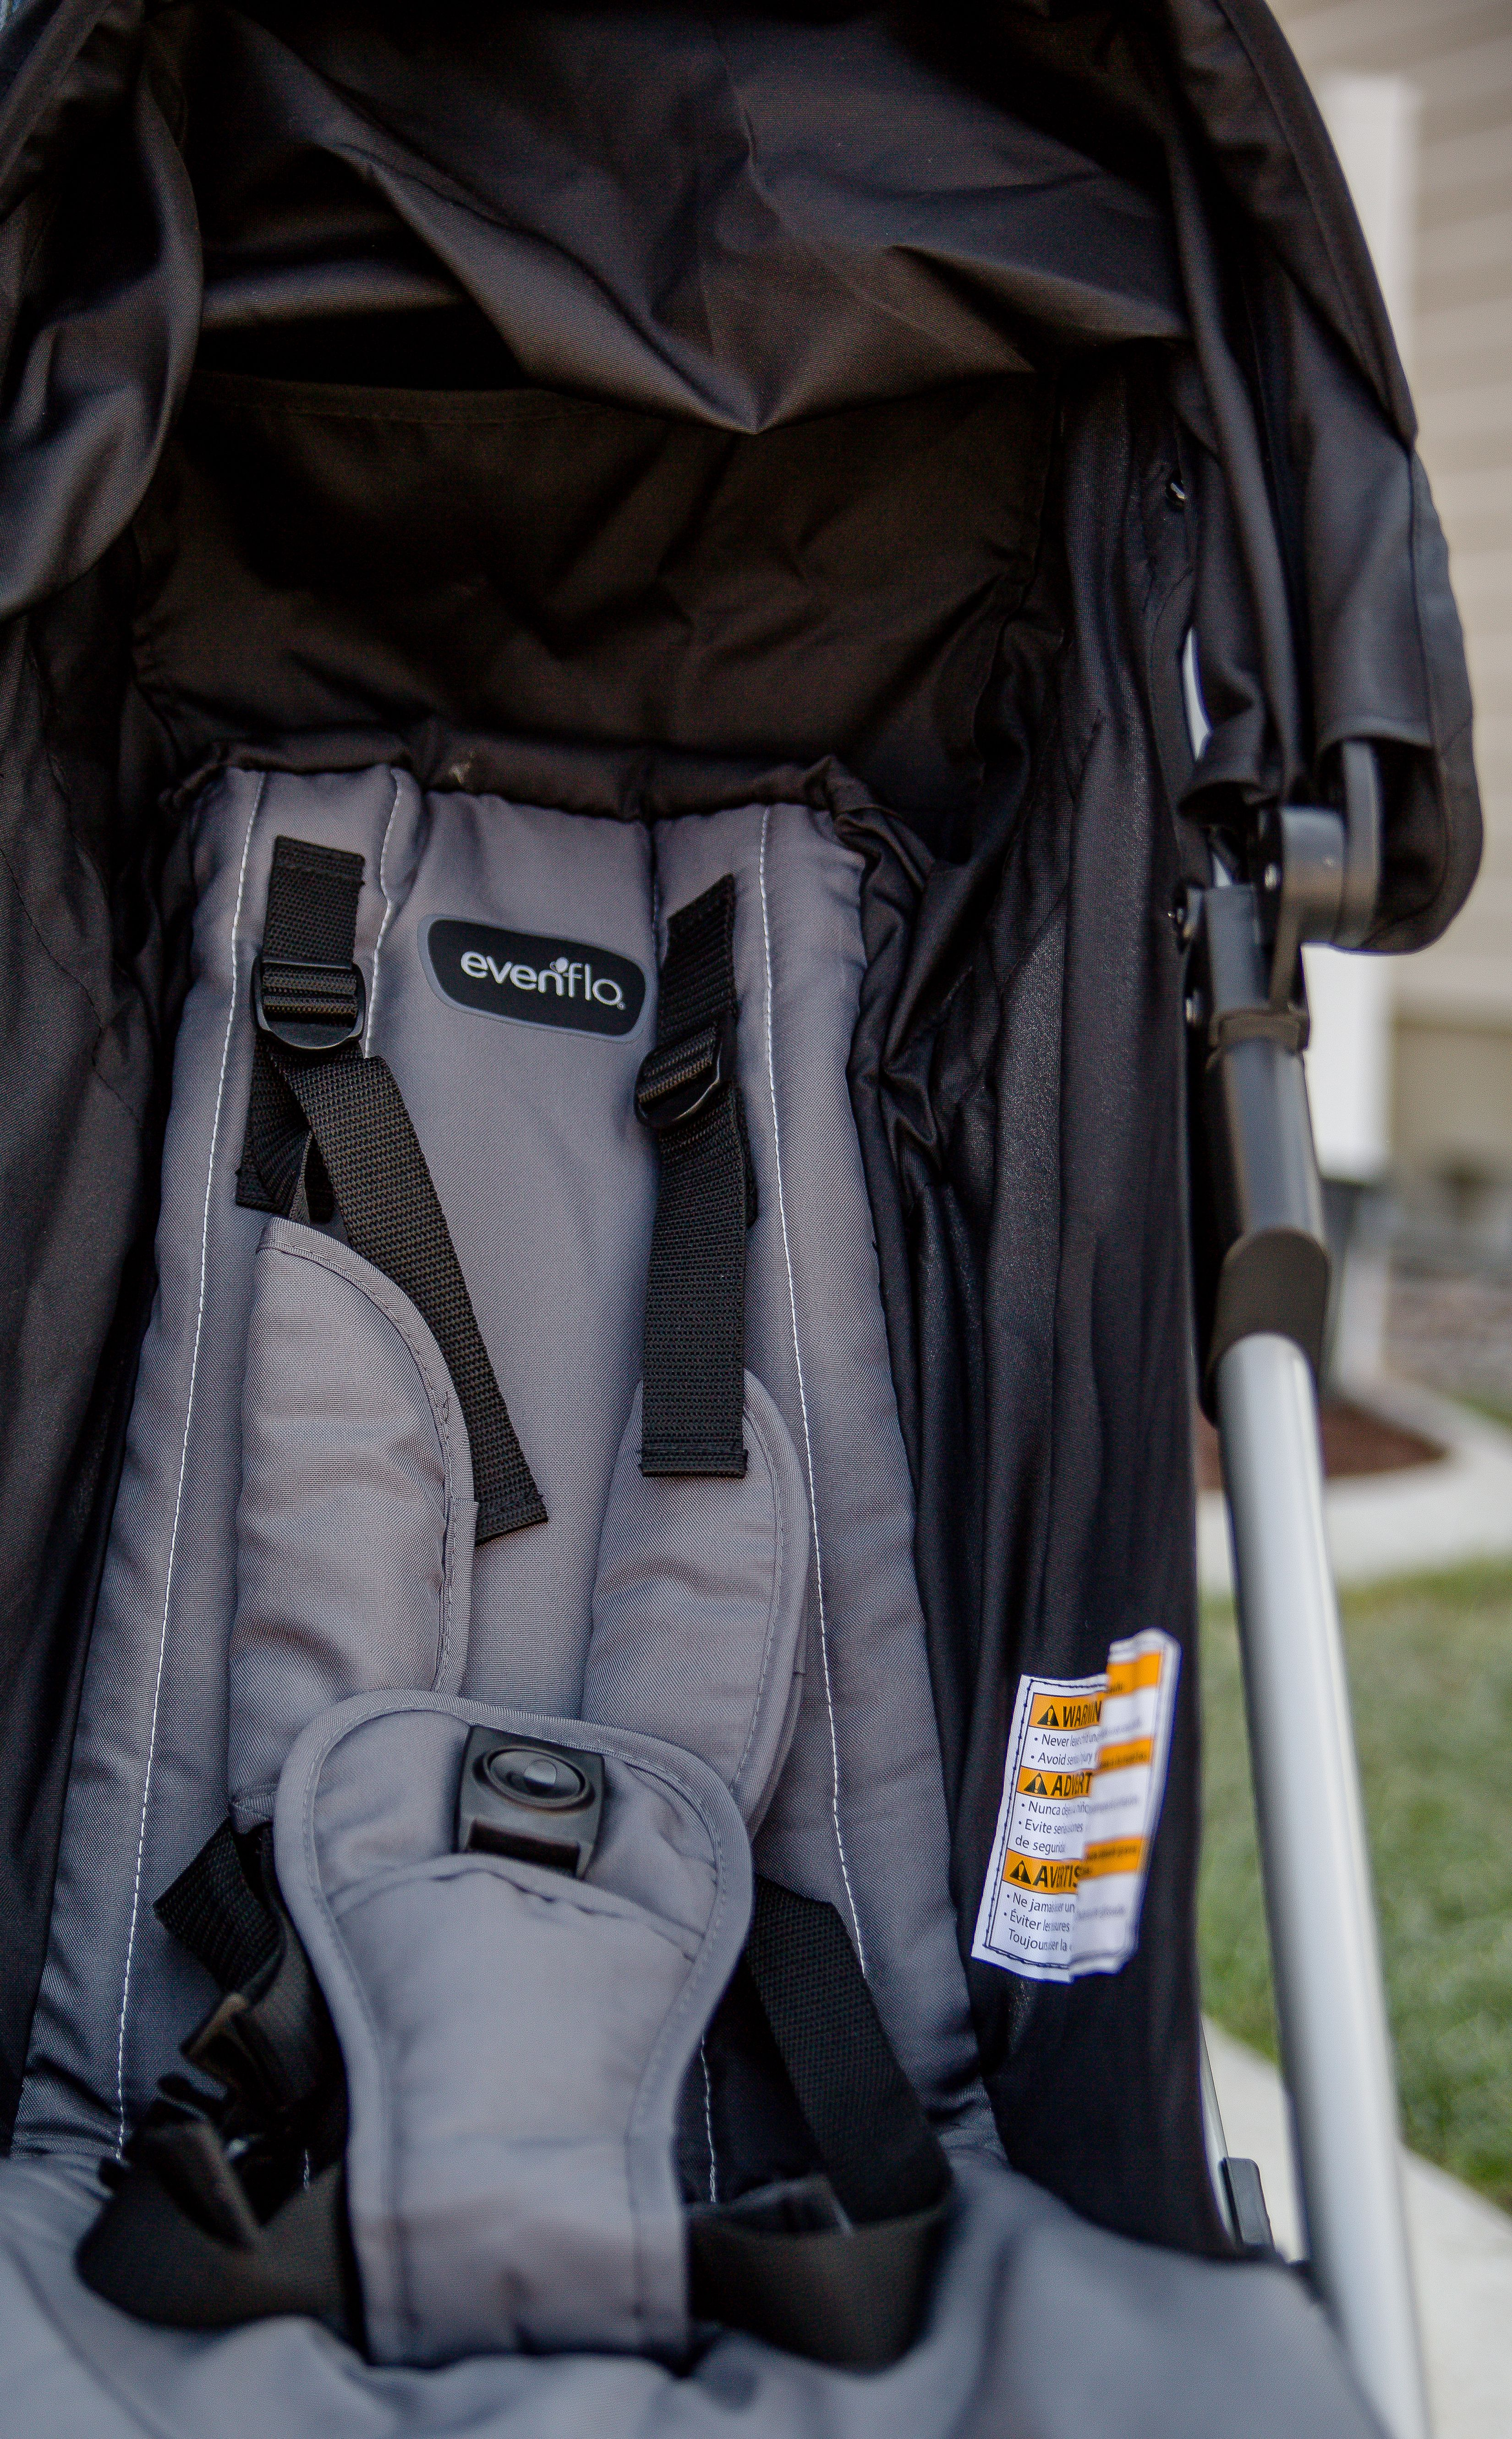 Double Stroller Fun with Evenflo Double strollers